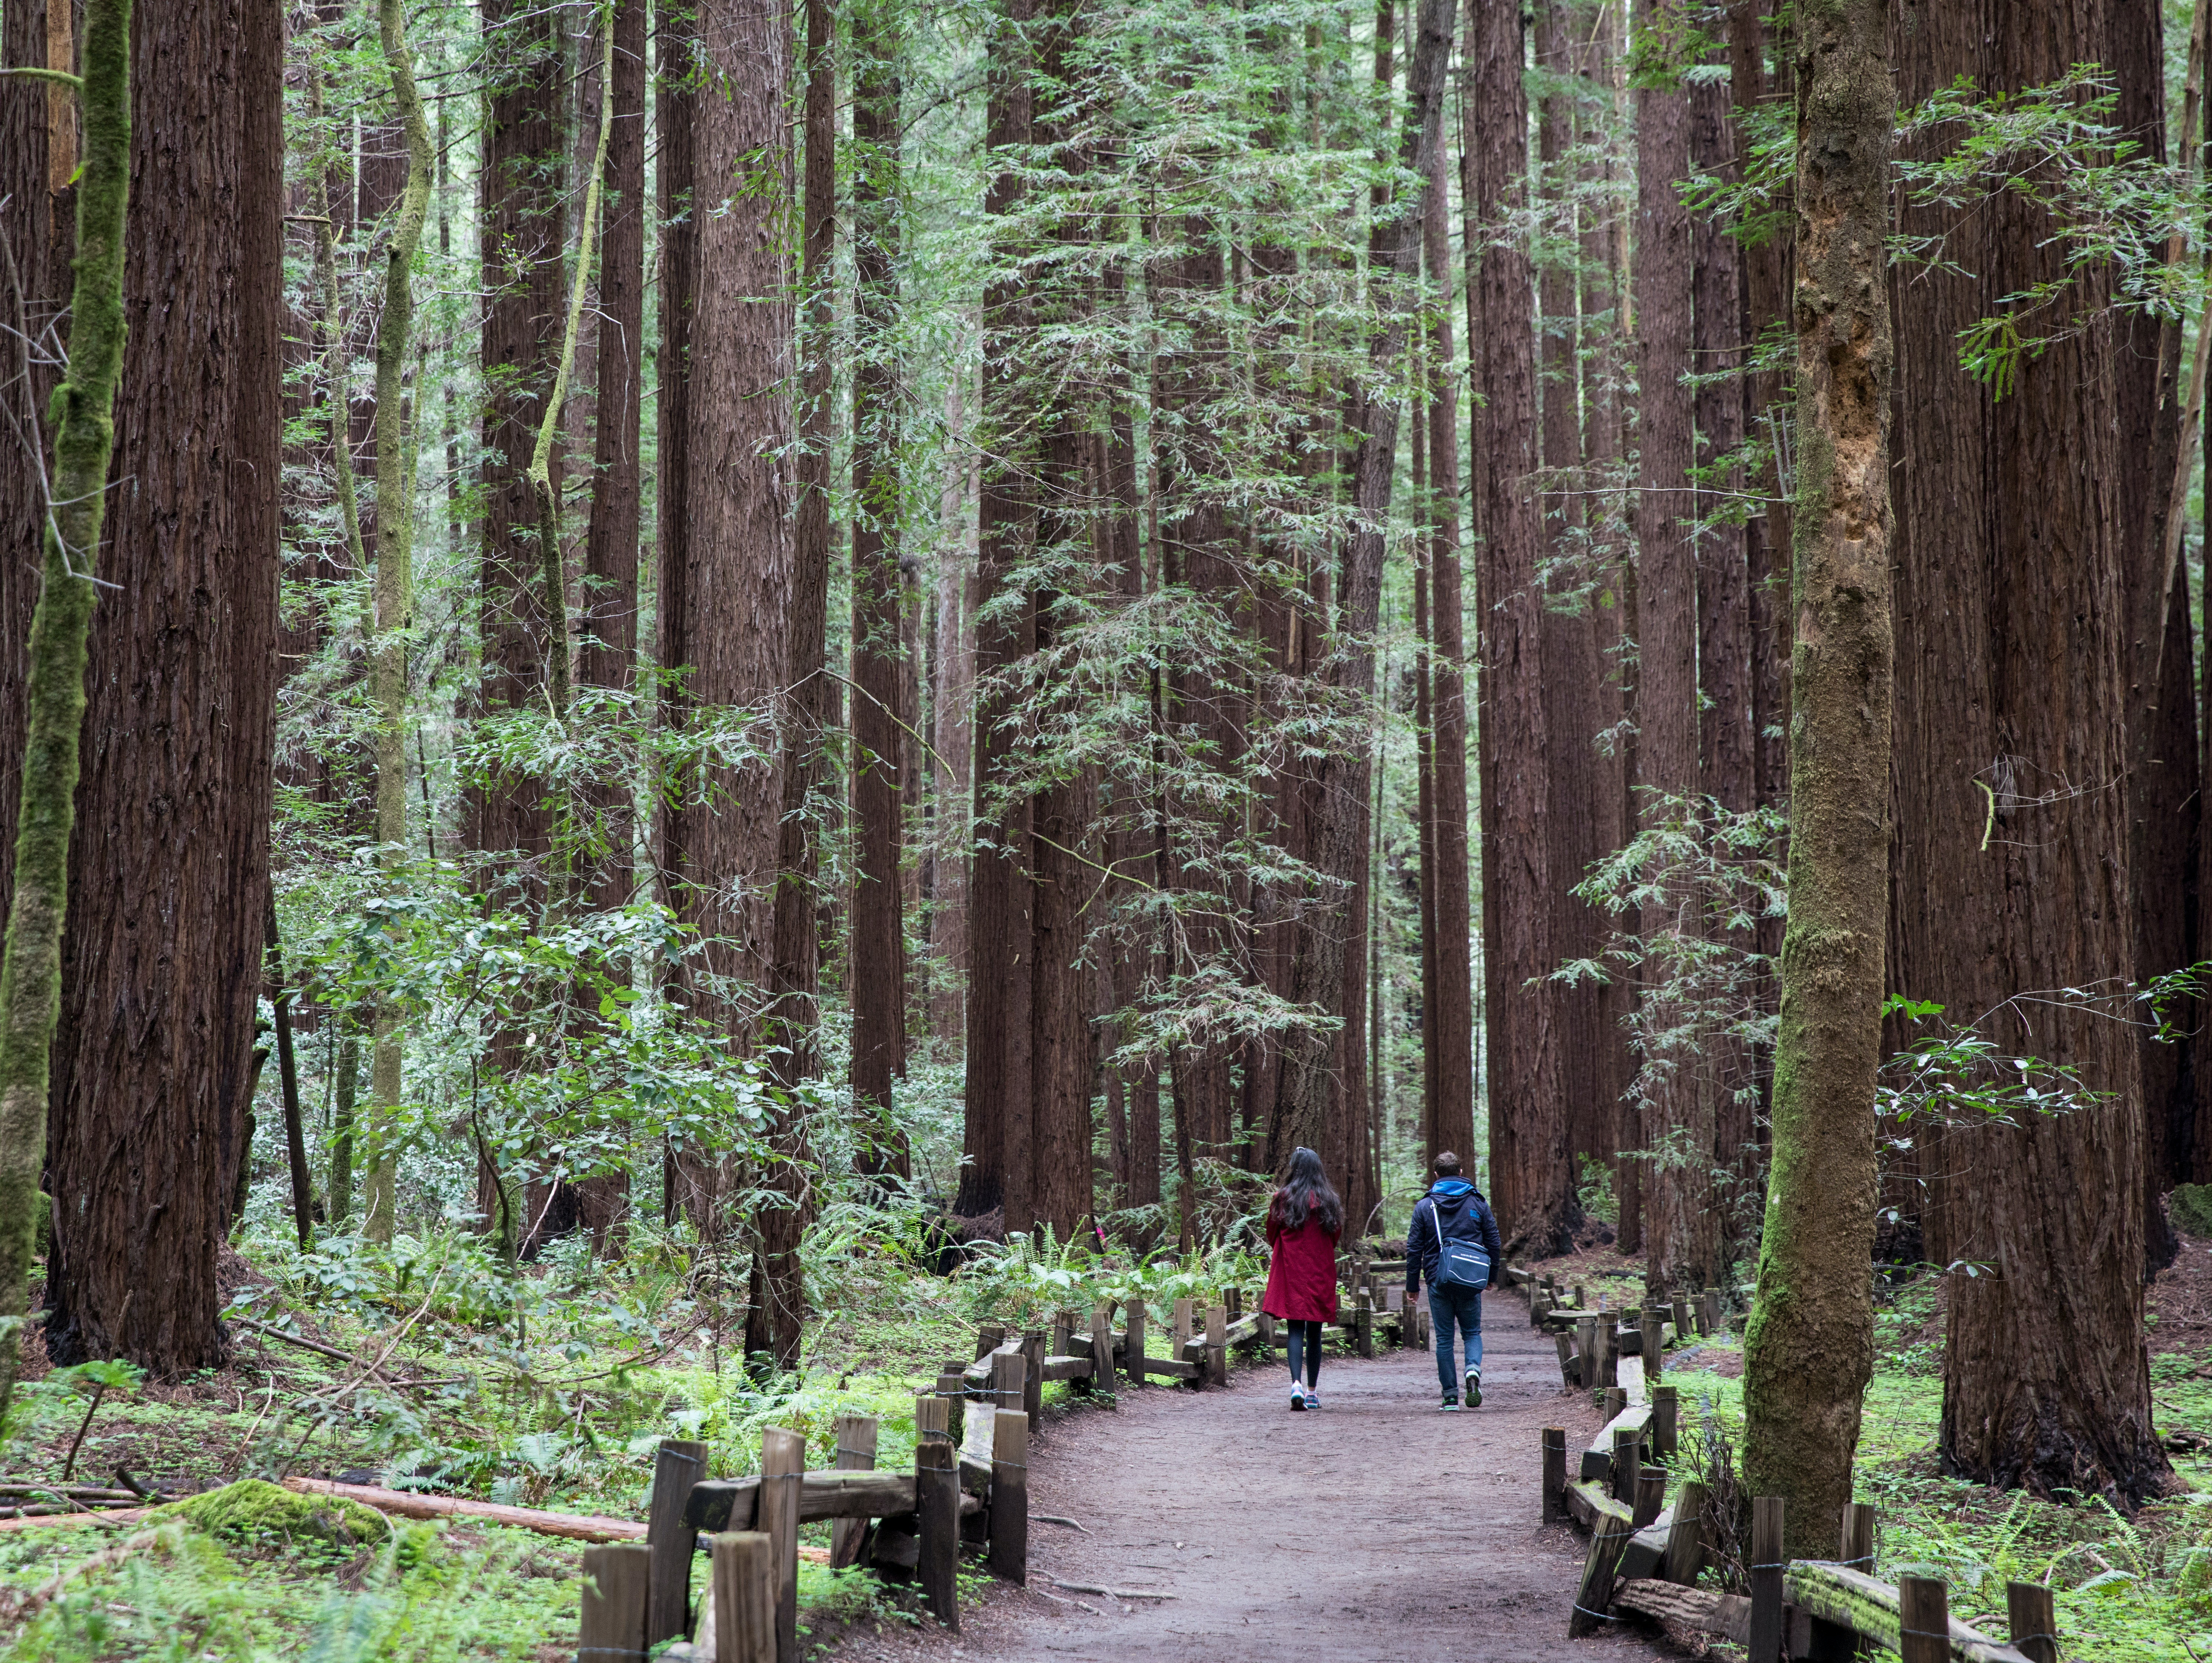 Armstrong Redwoods State Natural Reserve in Guerneville, California